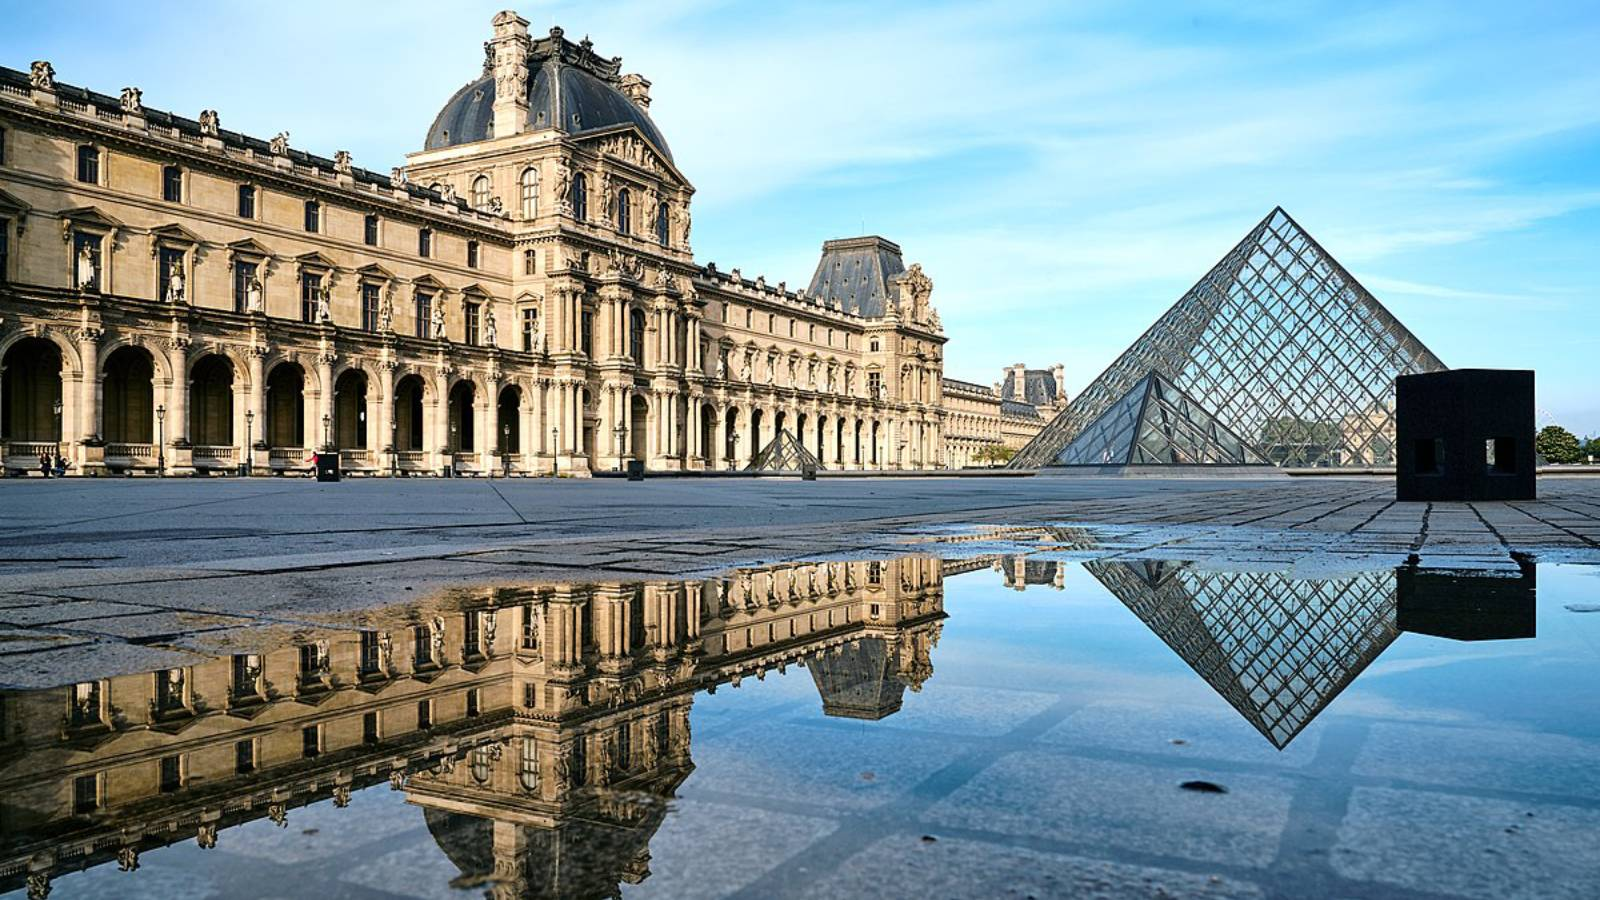 The Lourve virtual tour